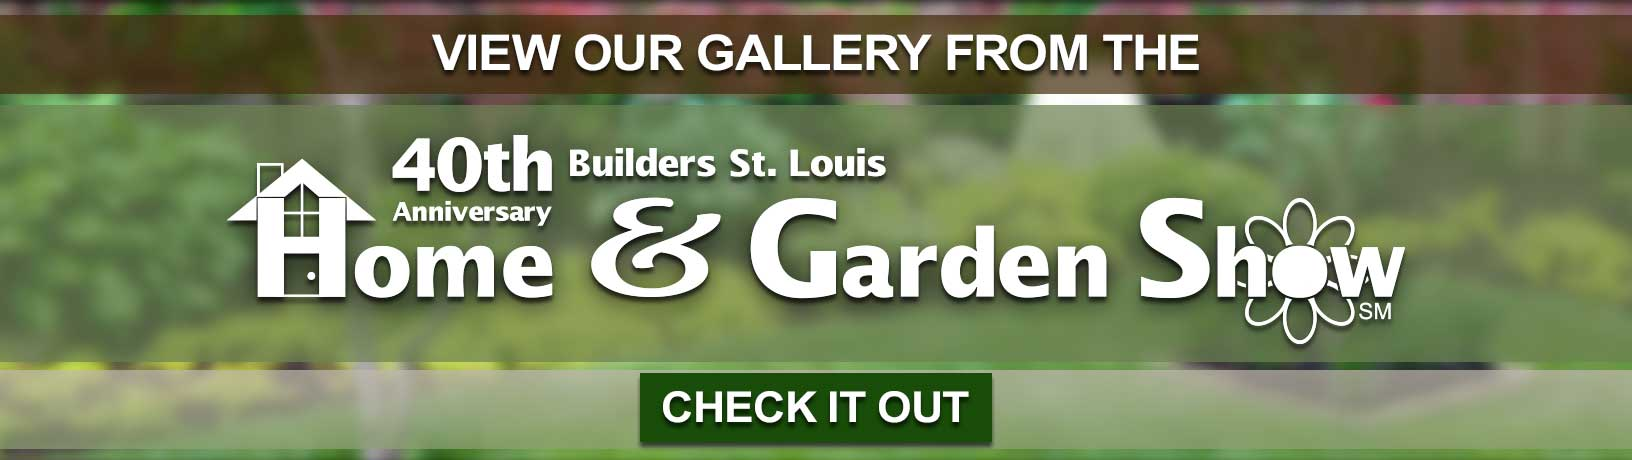 Check out the landscaping and hardscaping designs Outdoor Creative Design displayed at the St. Louis Home and Garden Show